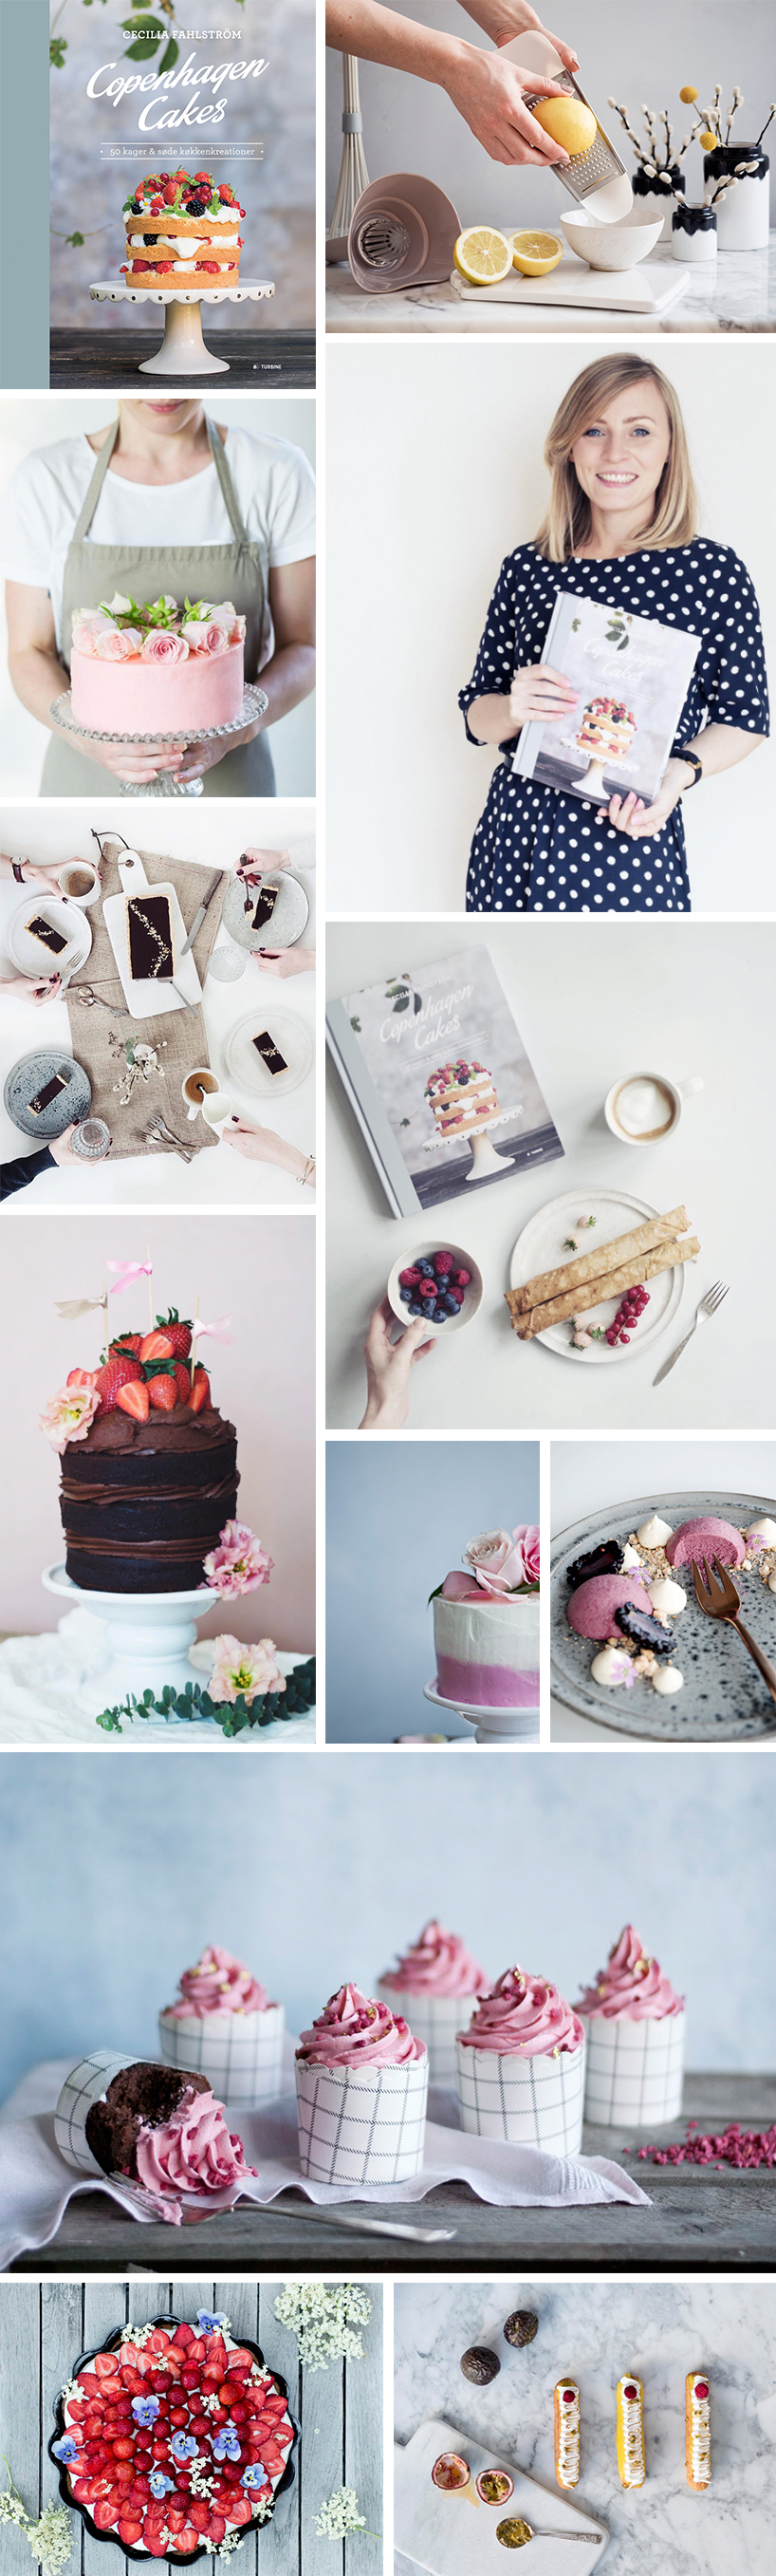 Copenhagen Cakes - Book and cake